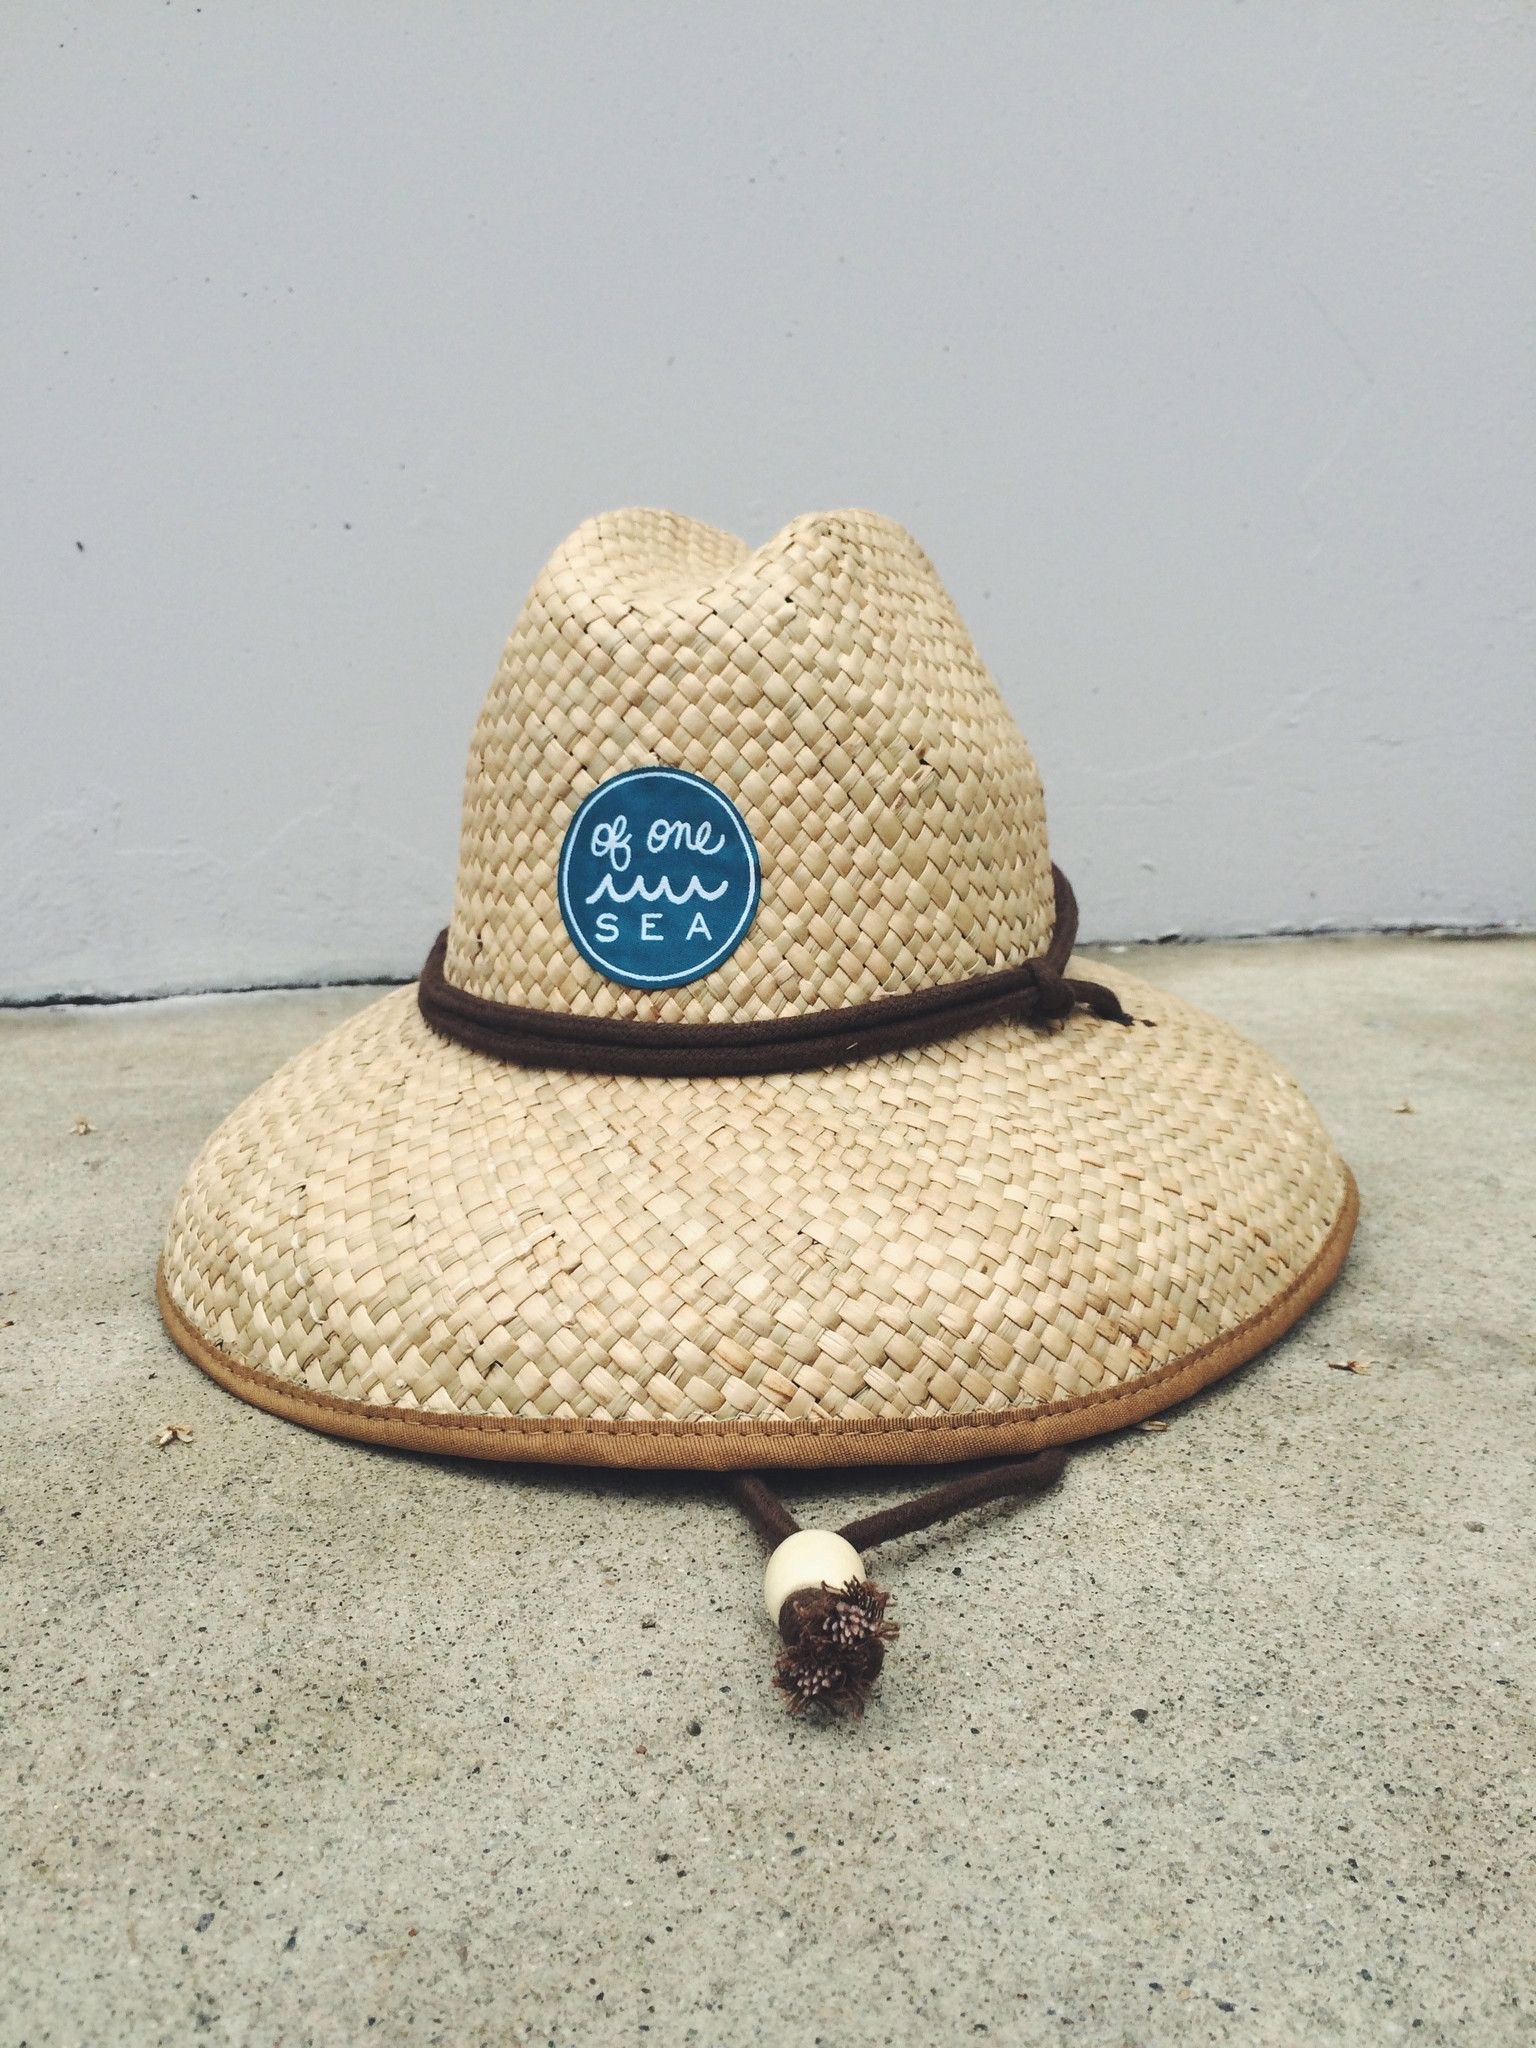 f8a33d6f5 San Onofre Kids Sun hat | Baby Baby | Hats, Toddler sun hat, Baby ...